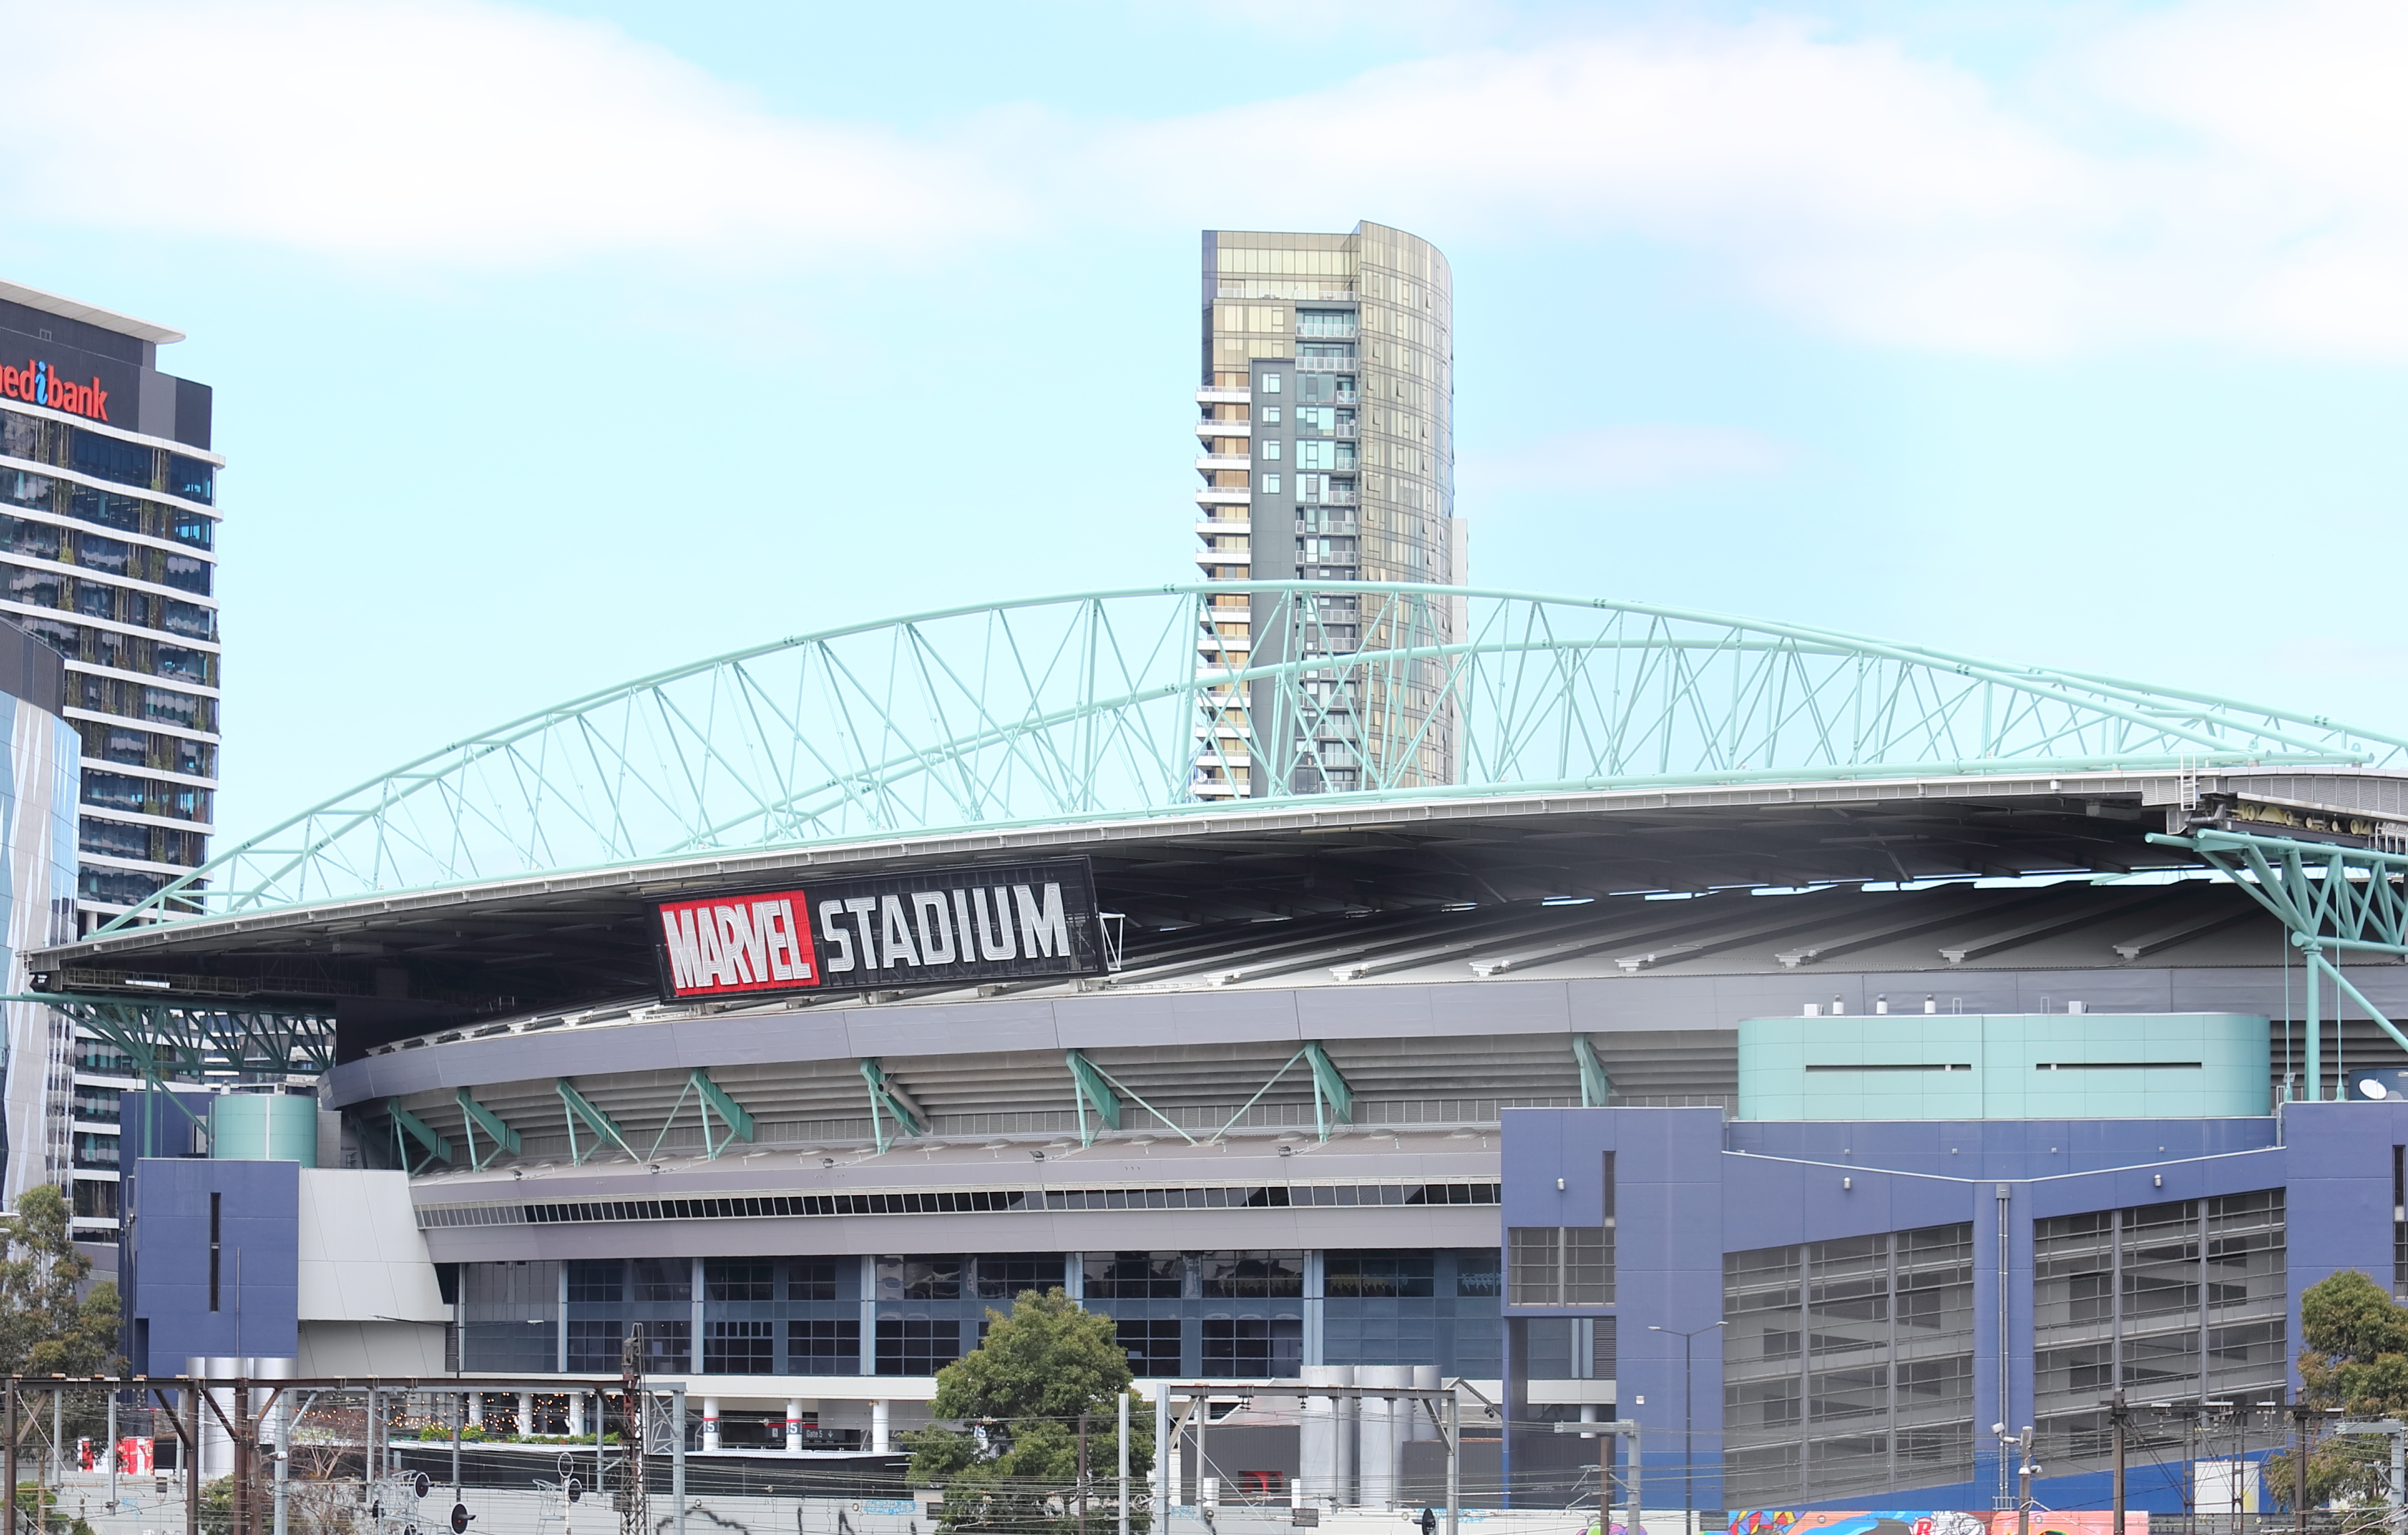 Article image for 'We haven't found a balance': Marvel Stadium pledges to review security presence at matches